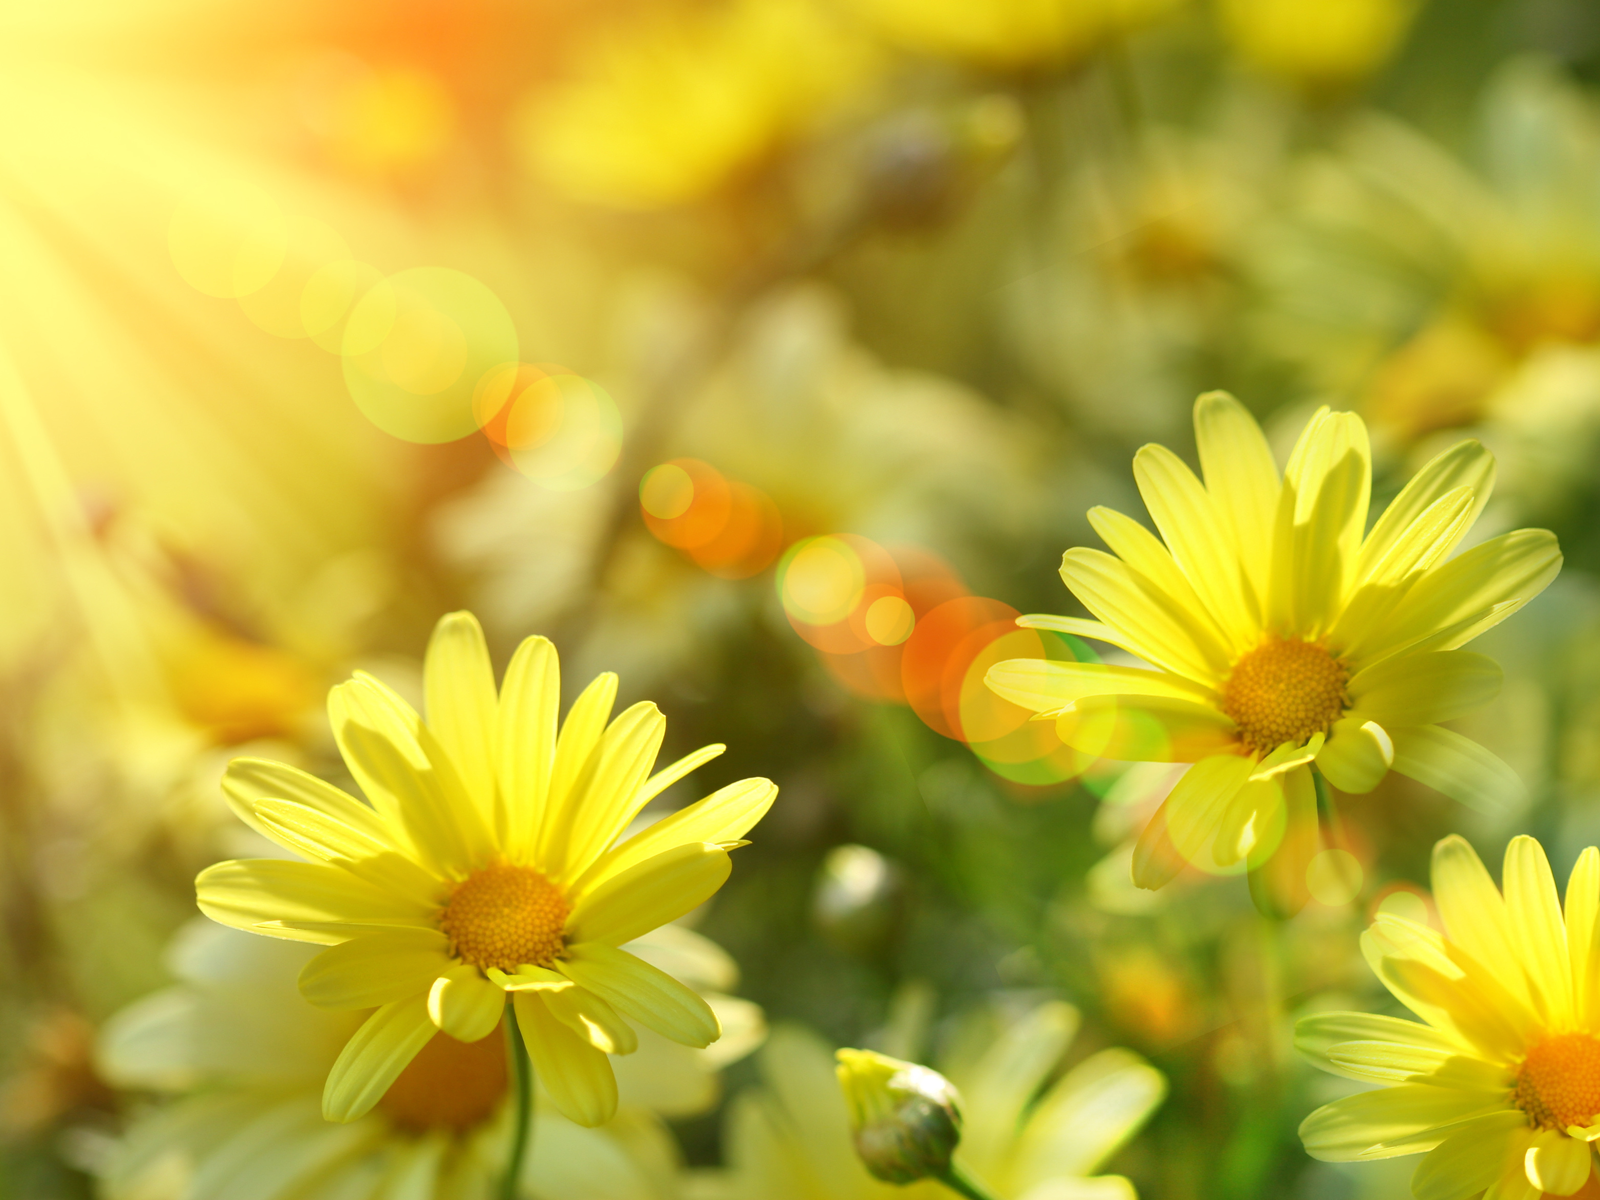 Sunshine Google Images Wallpaper Spring View Original 1600x1200